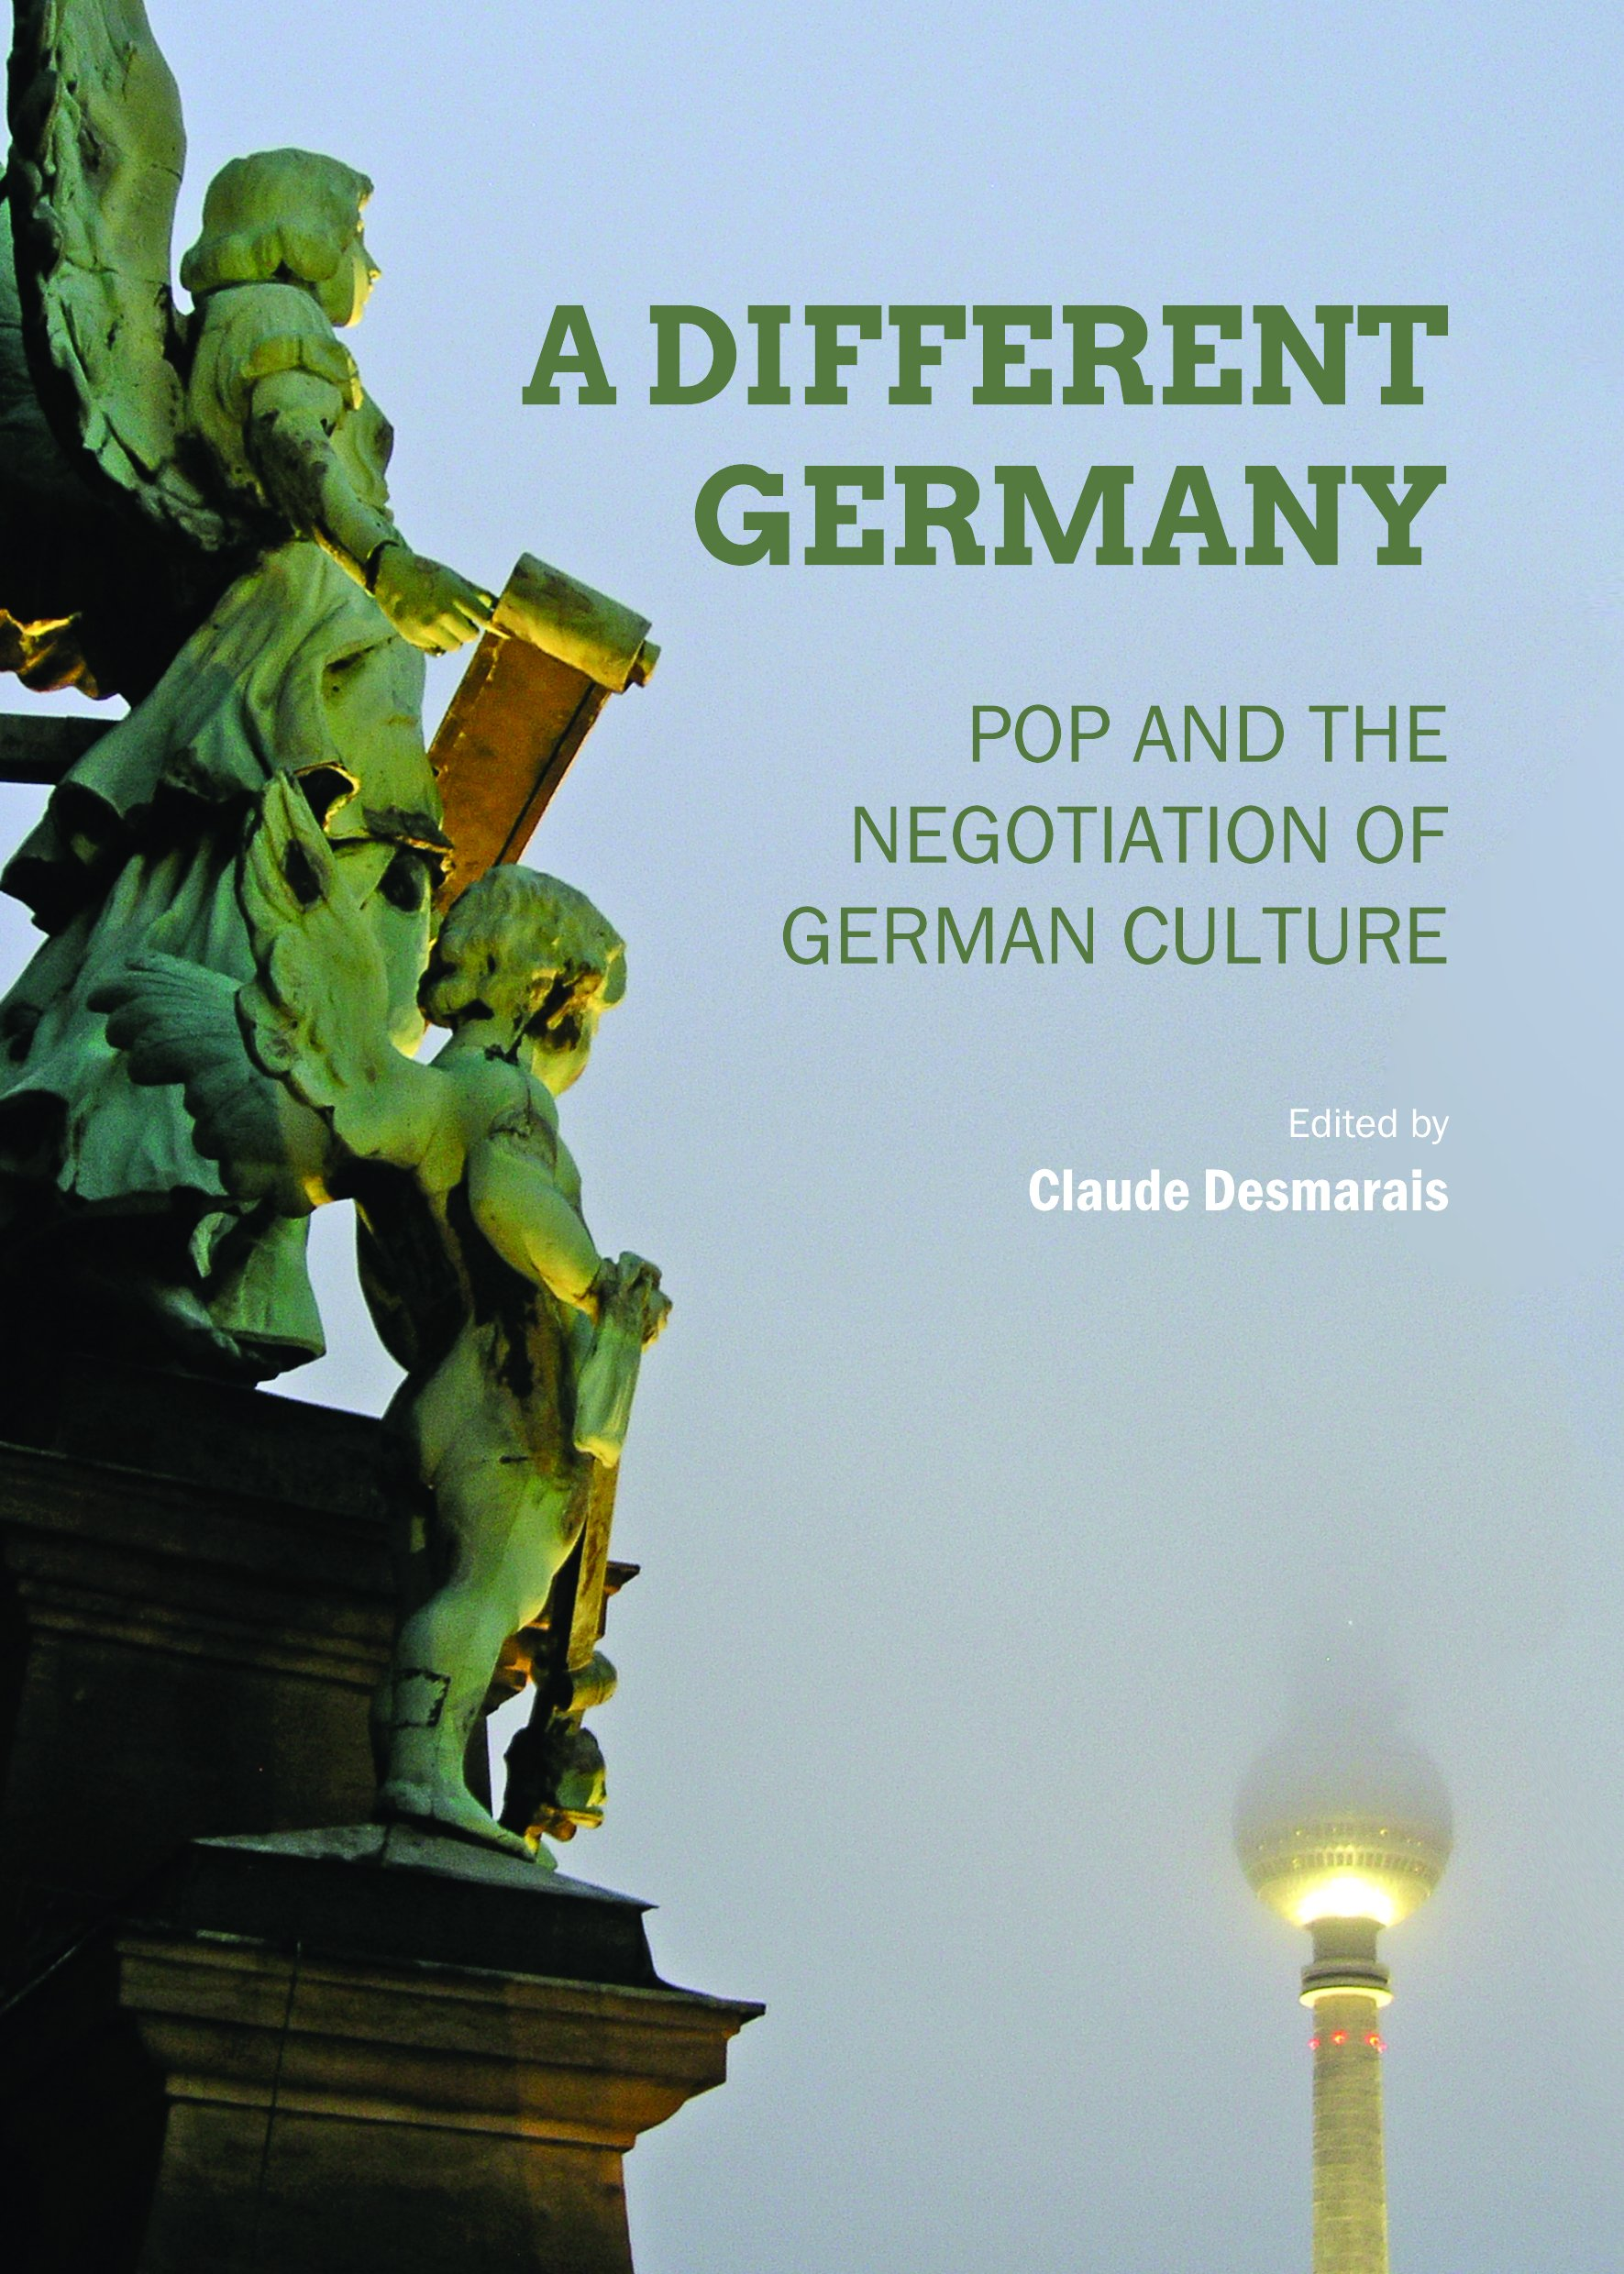 A Different Germany: Pop and the Negotiation of German Culture